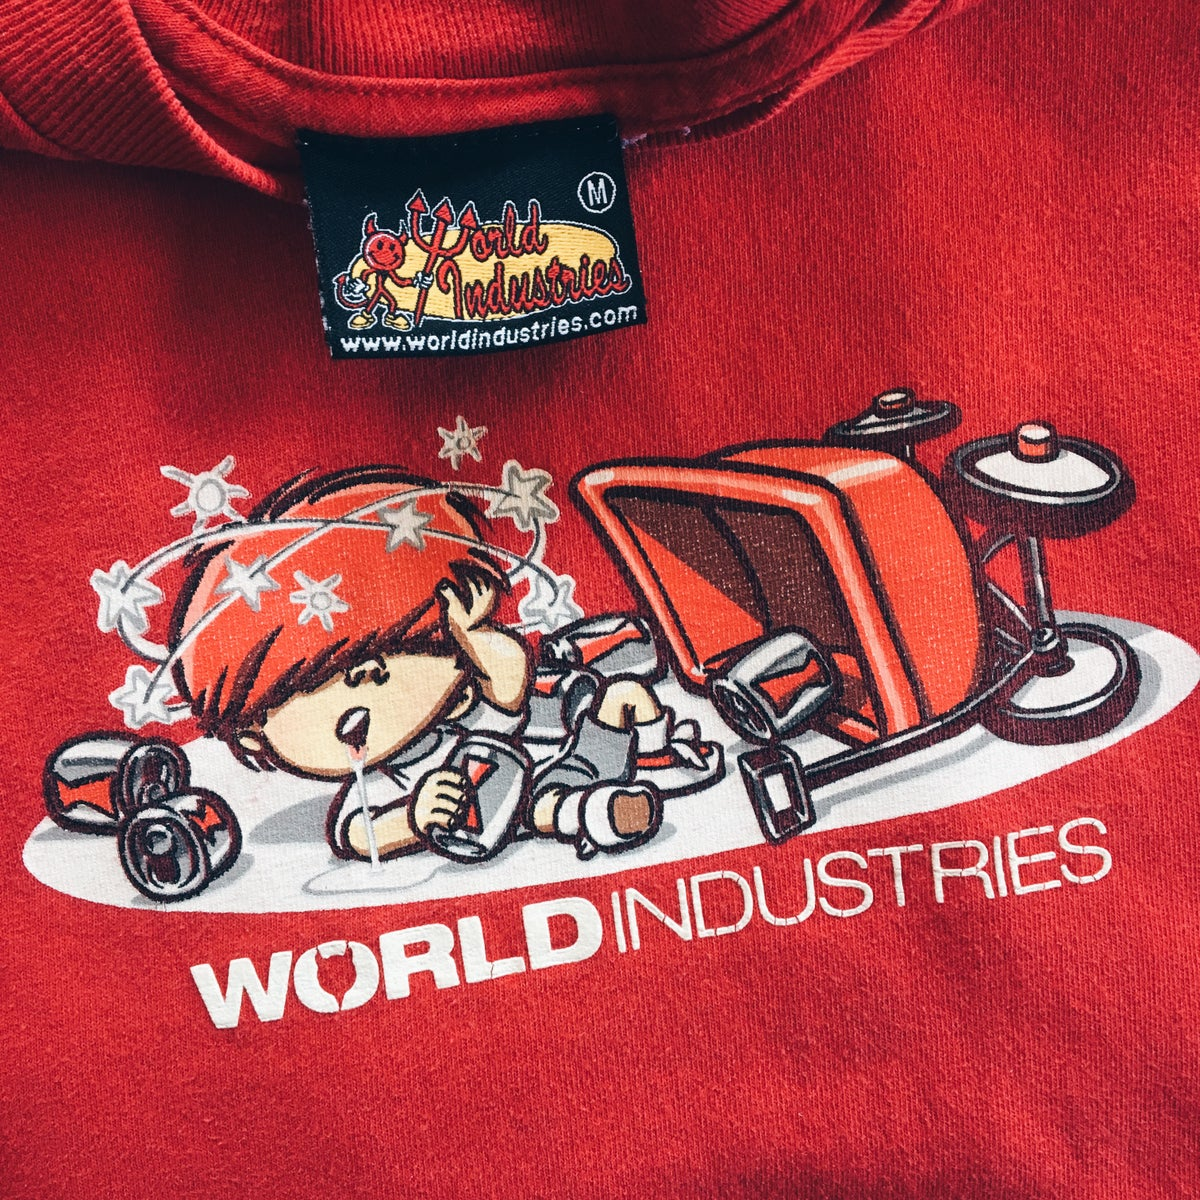 Image of Original 2000 World Industries Mike Crum Tee.